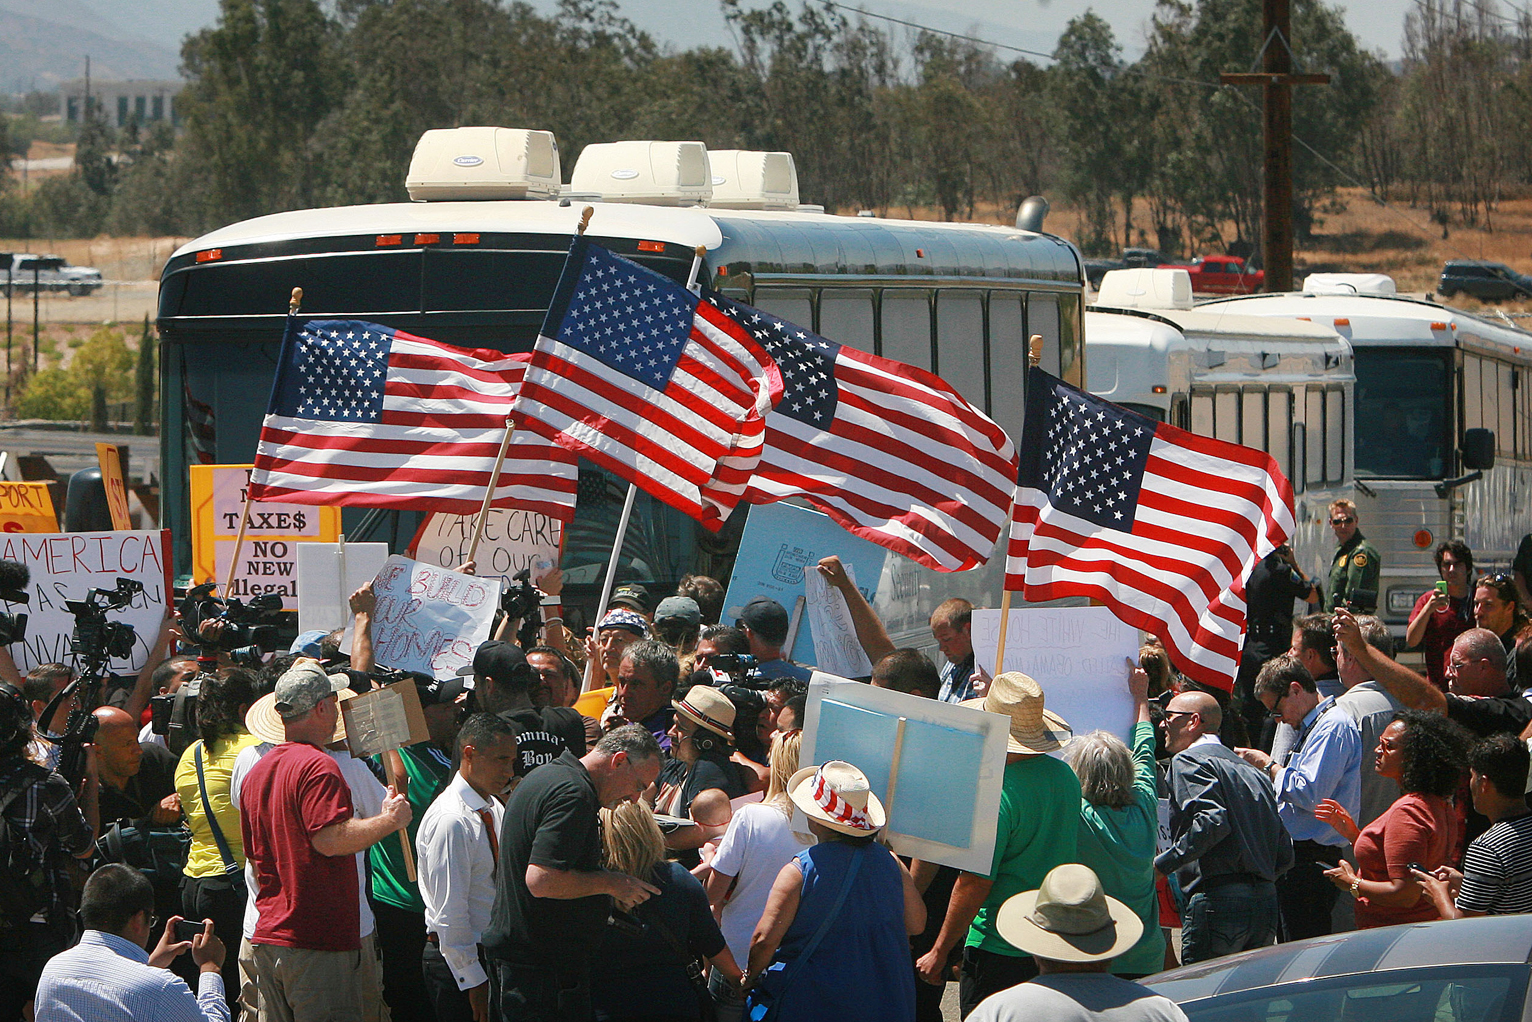 AntiImmigrant Hate Coming From Everyday Americans Politics US